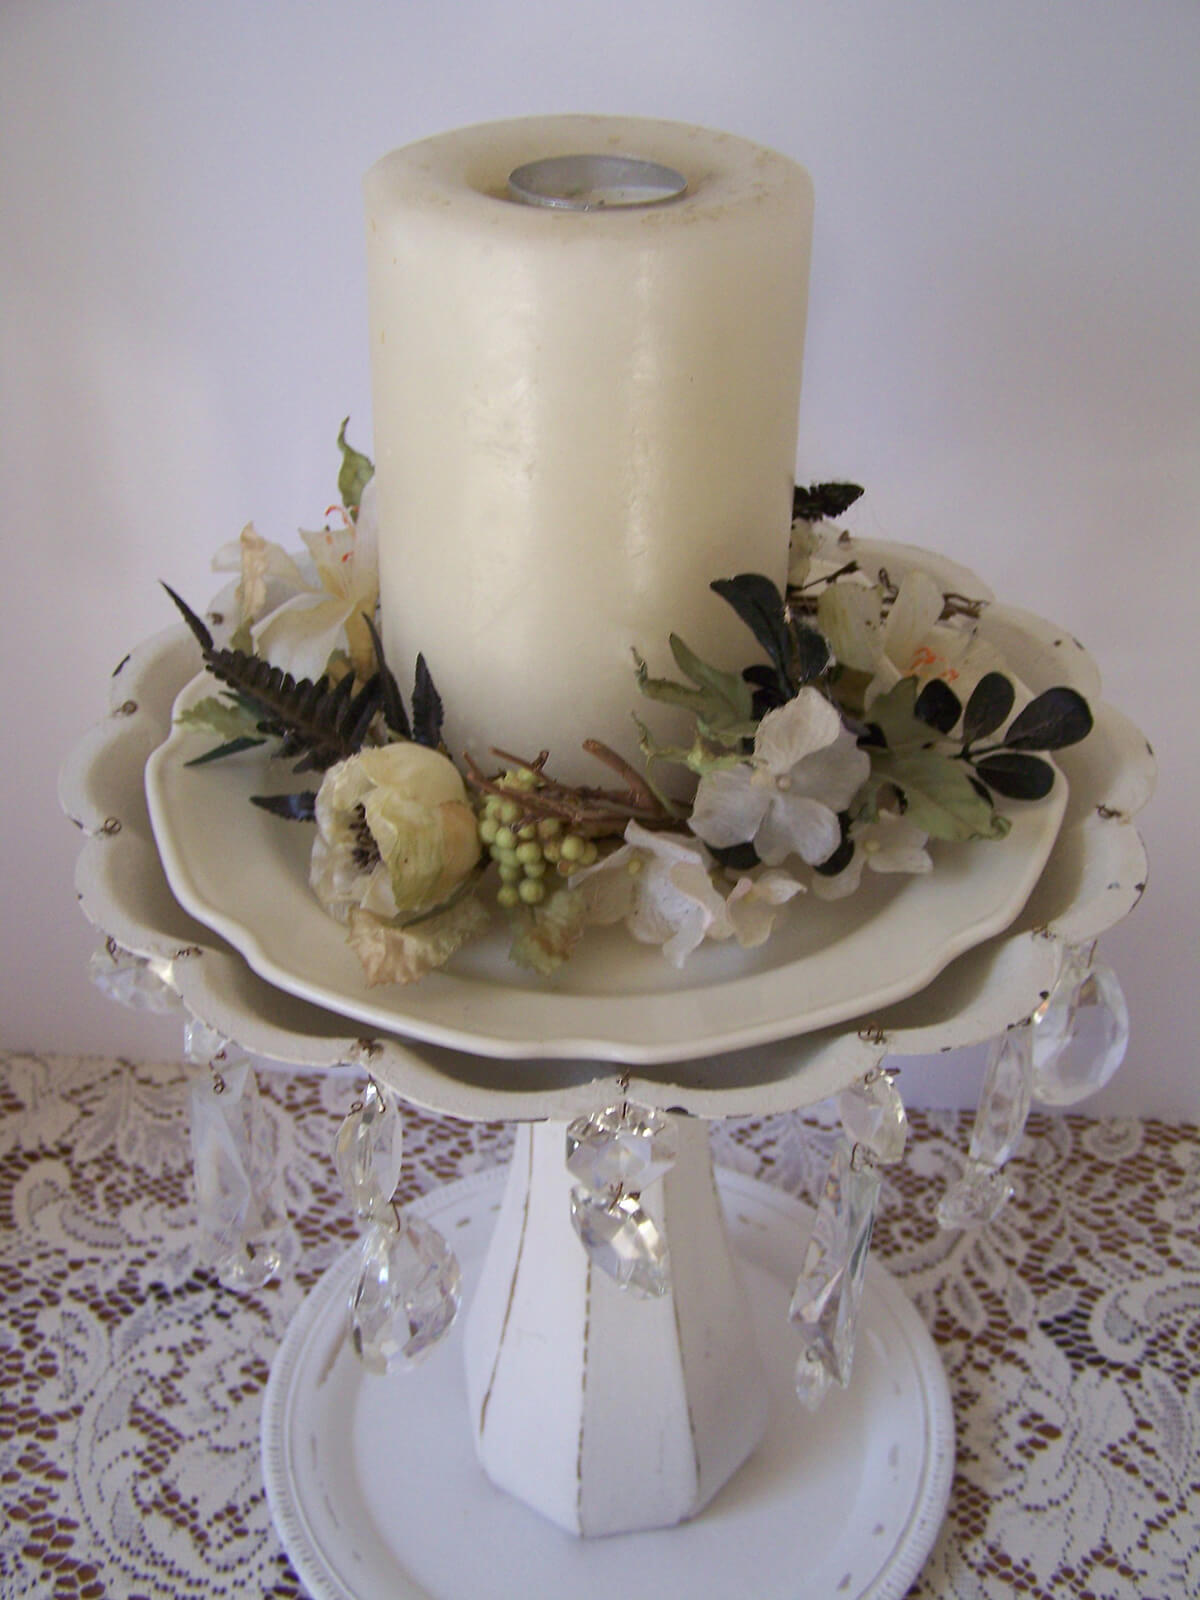 Candle Centerpiece with Distressed Tray